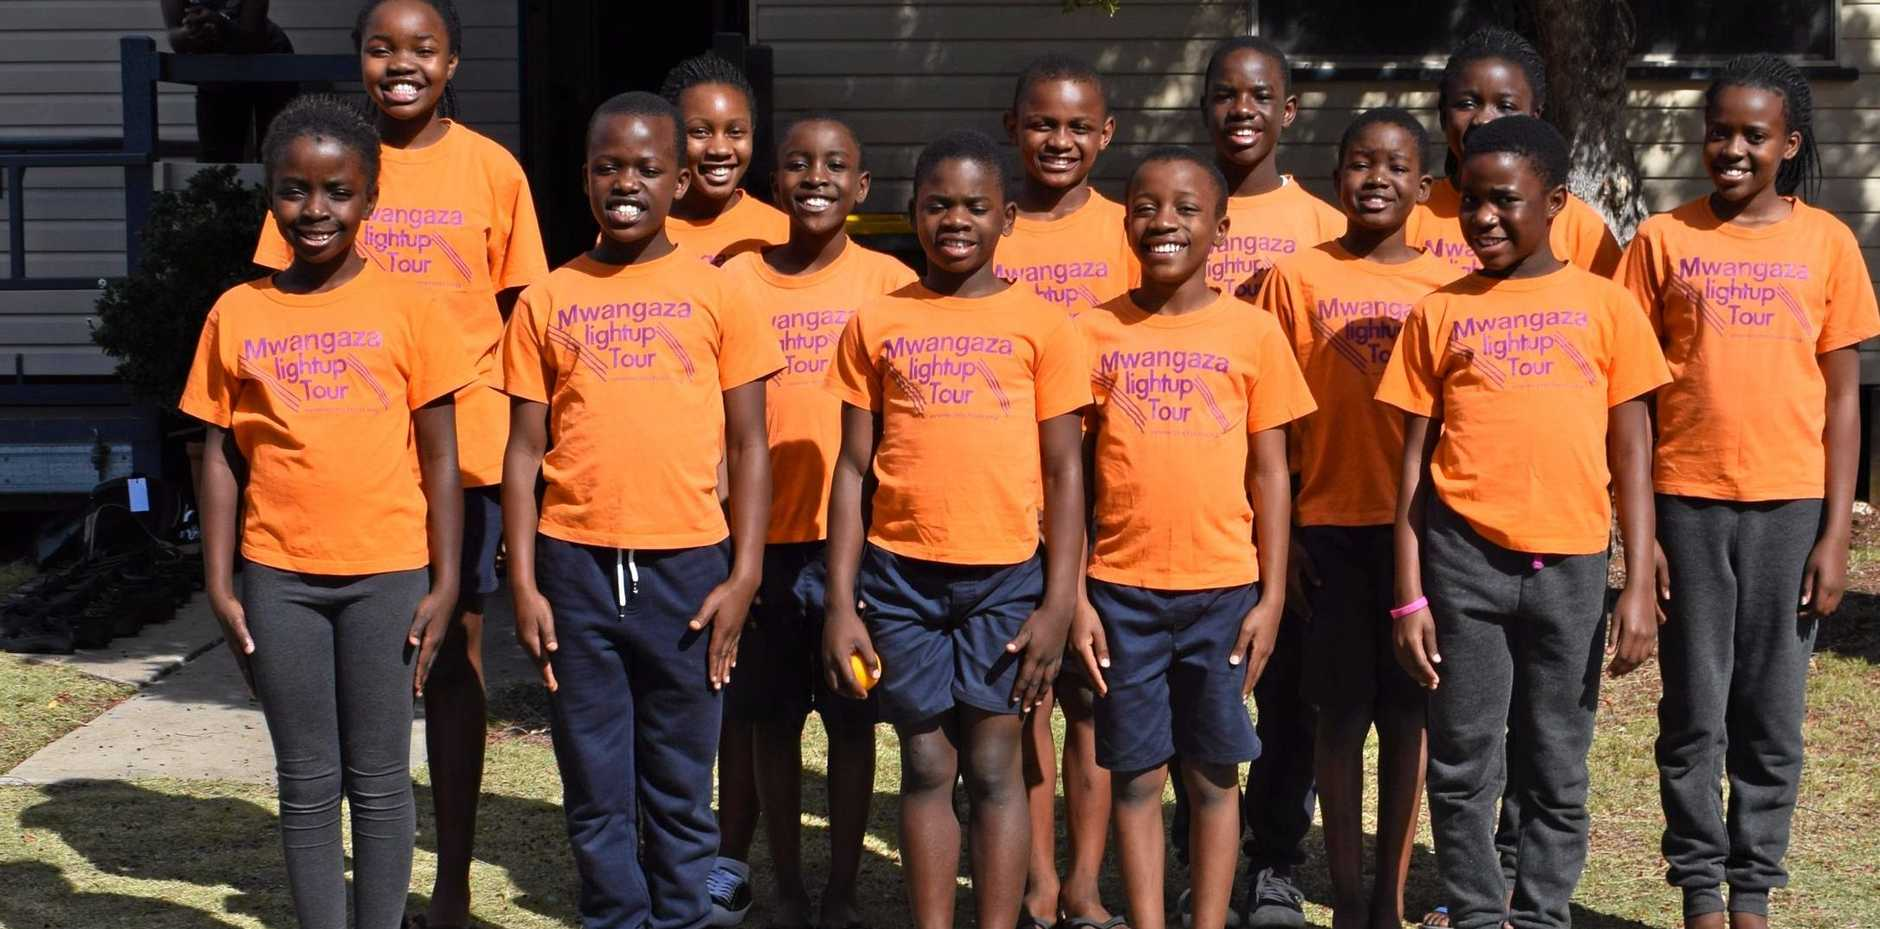 Some of the members of the Mwangaza Children's Choir who performed in Chinchilla on Sunday July 1, 2018.